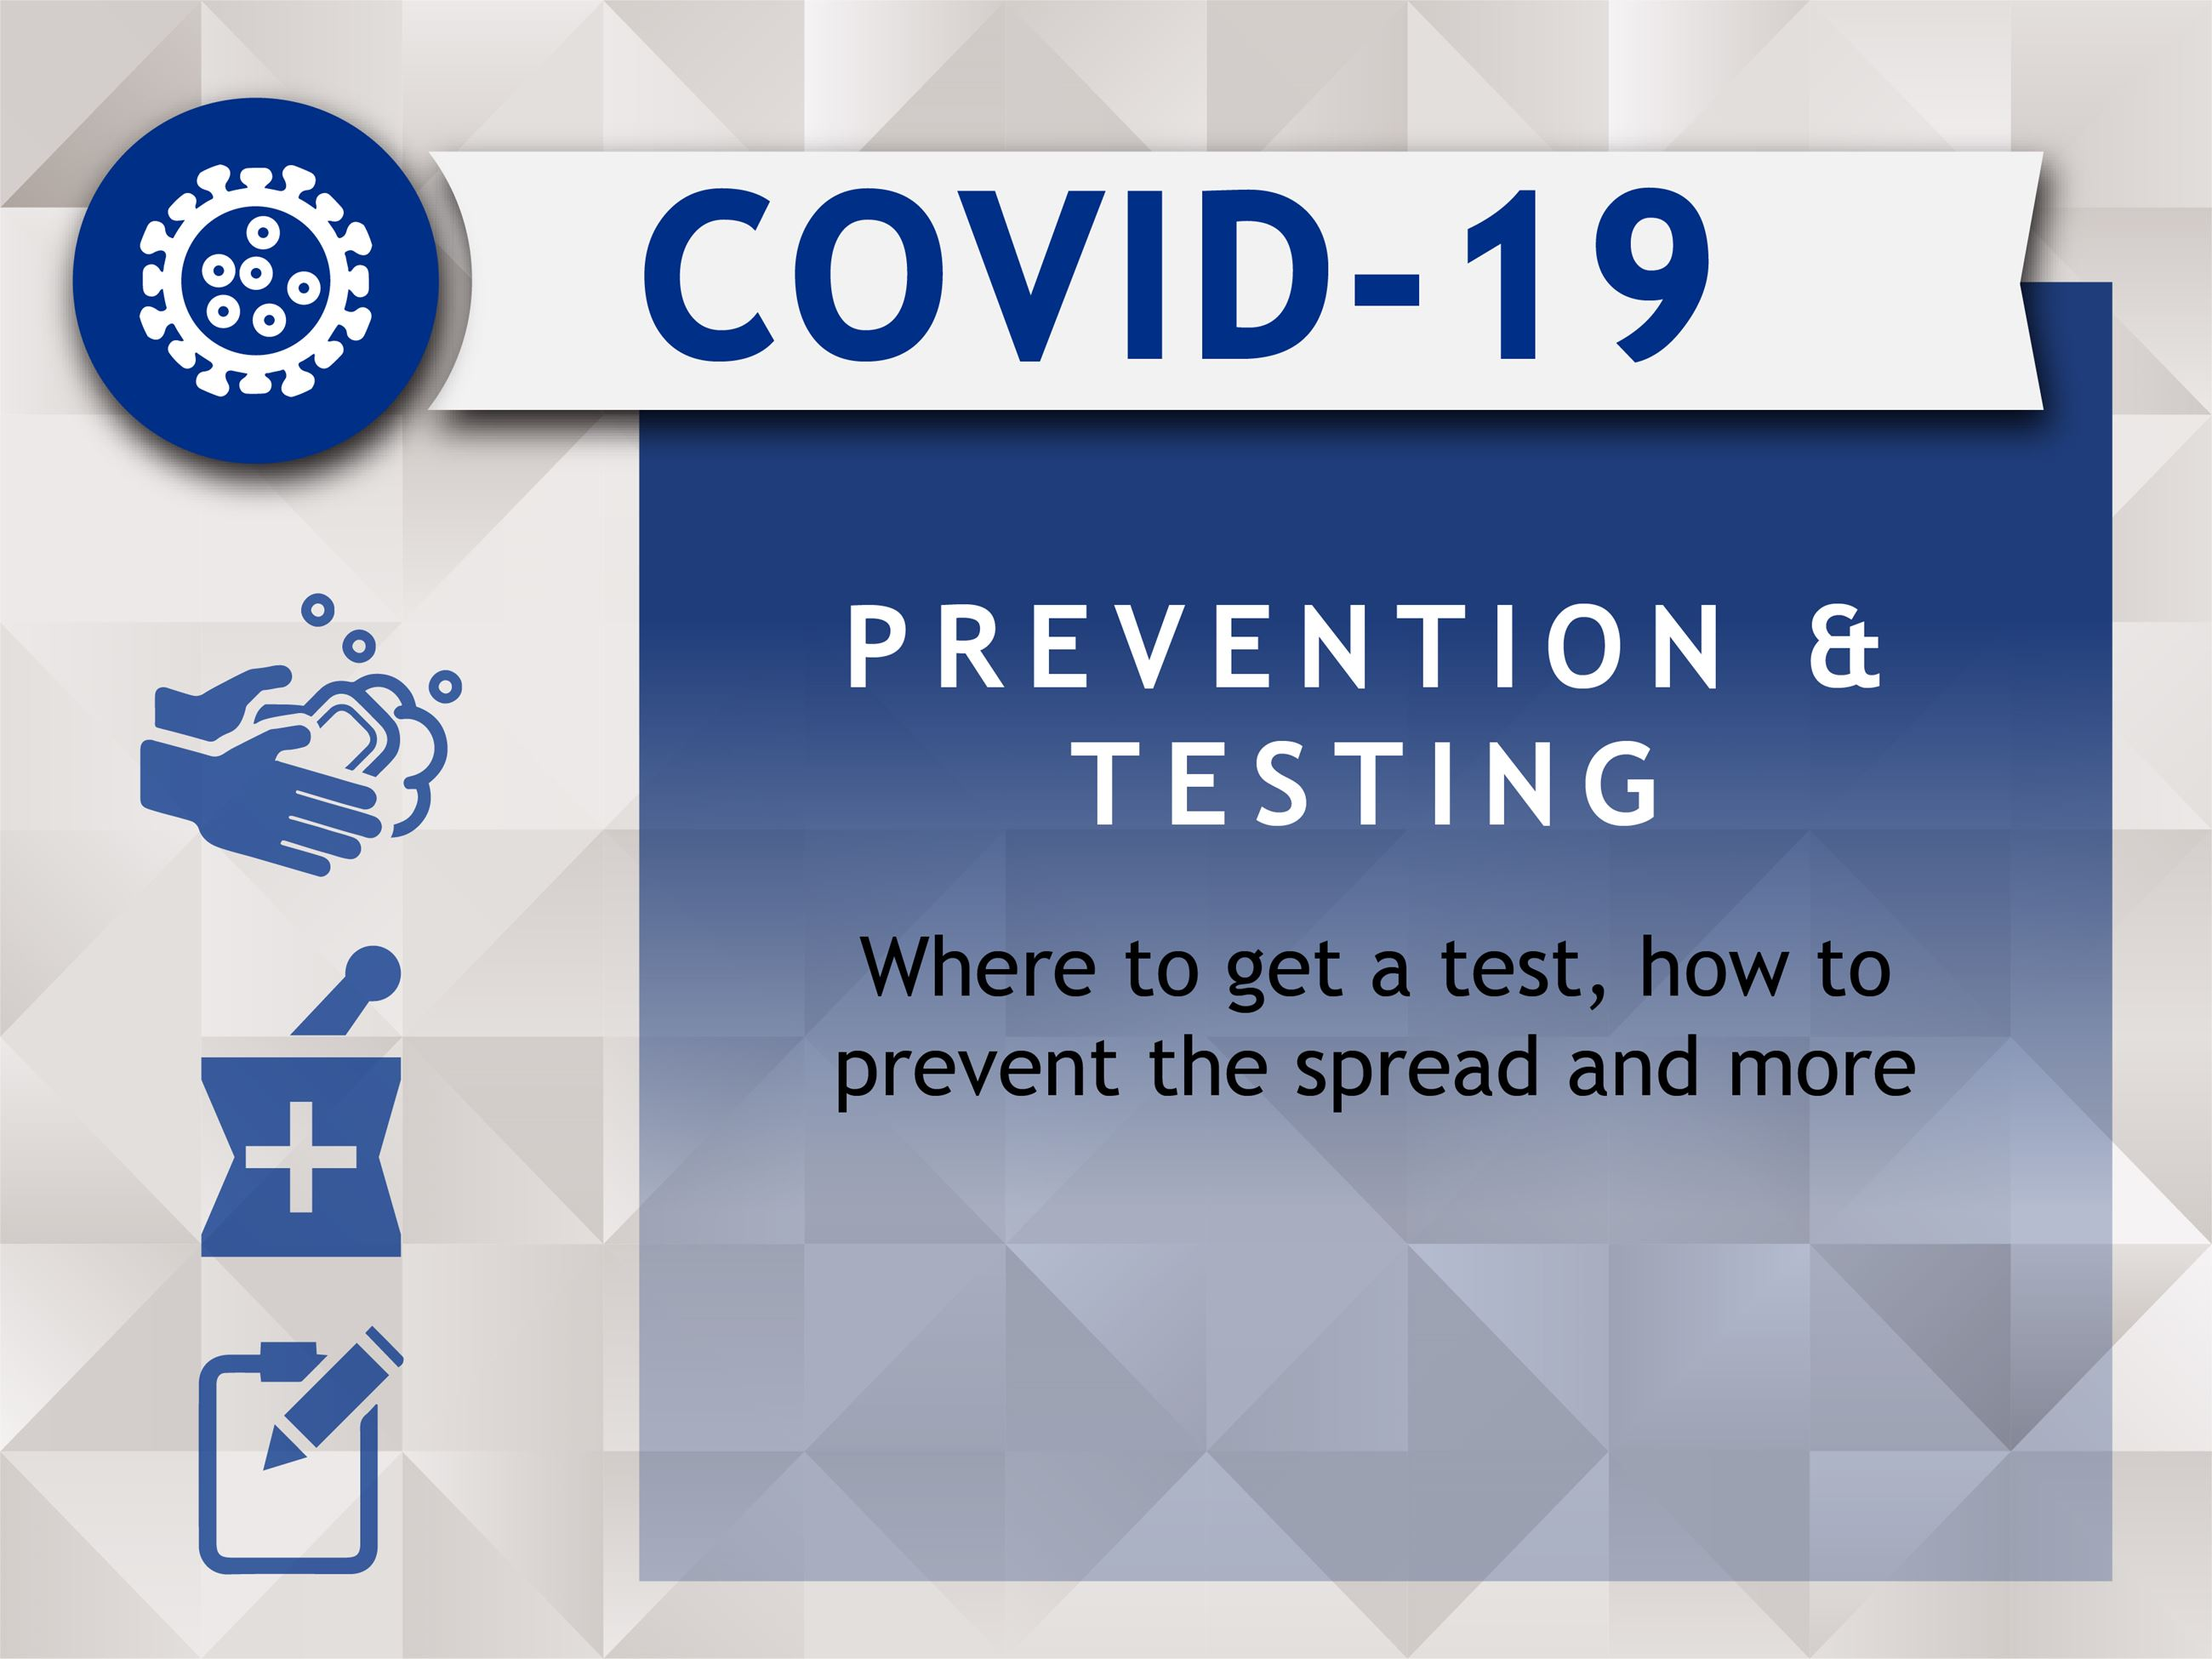 COVID-19 web images_PreventionTesting